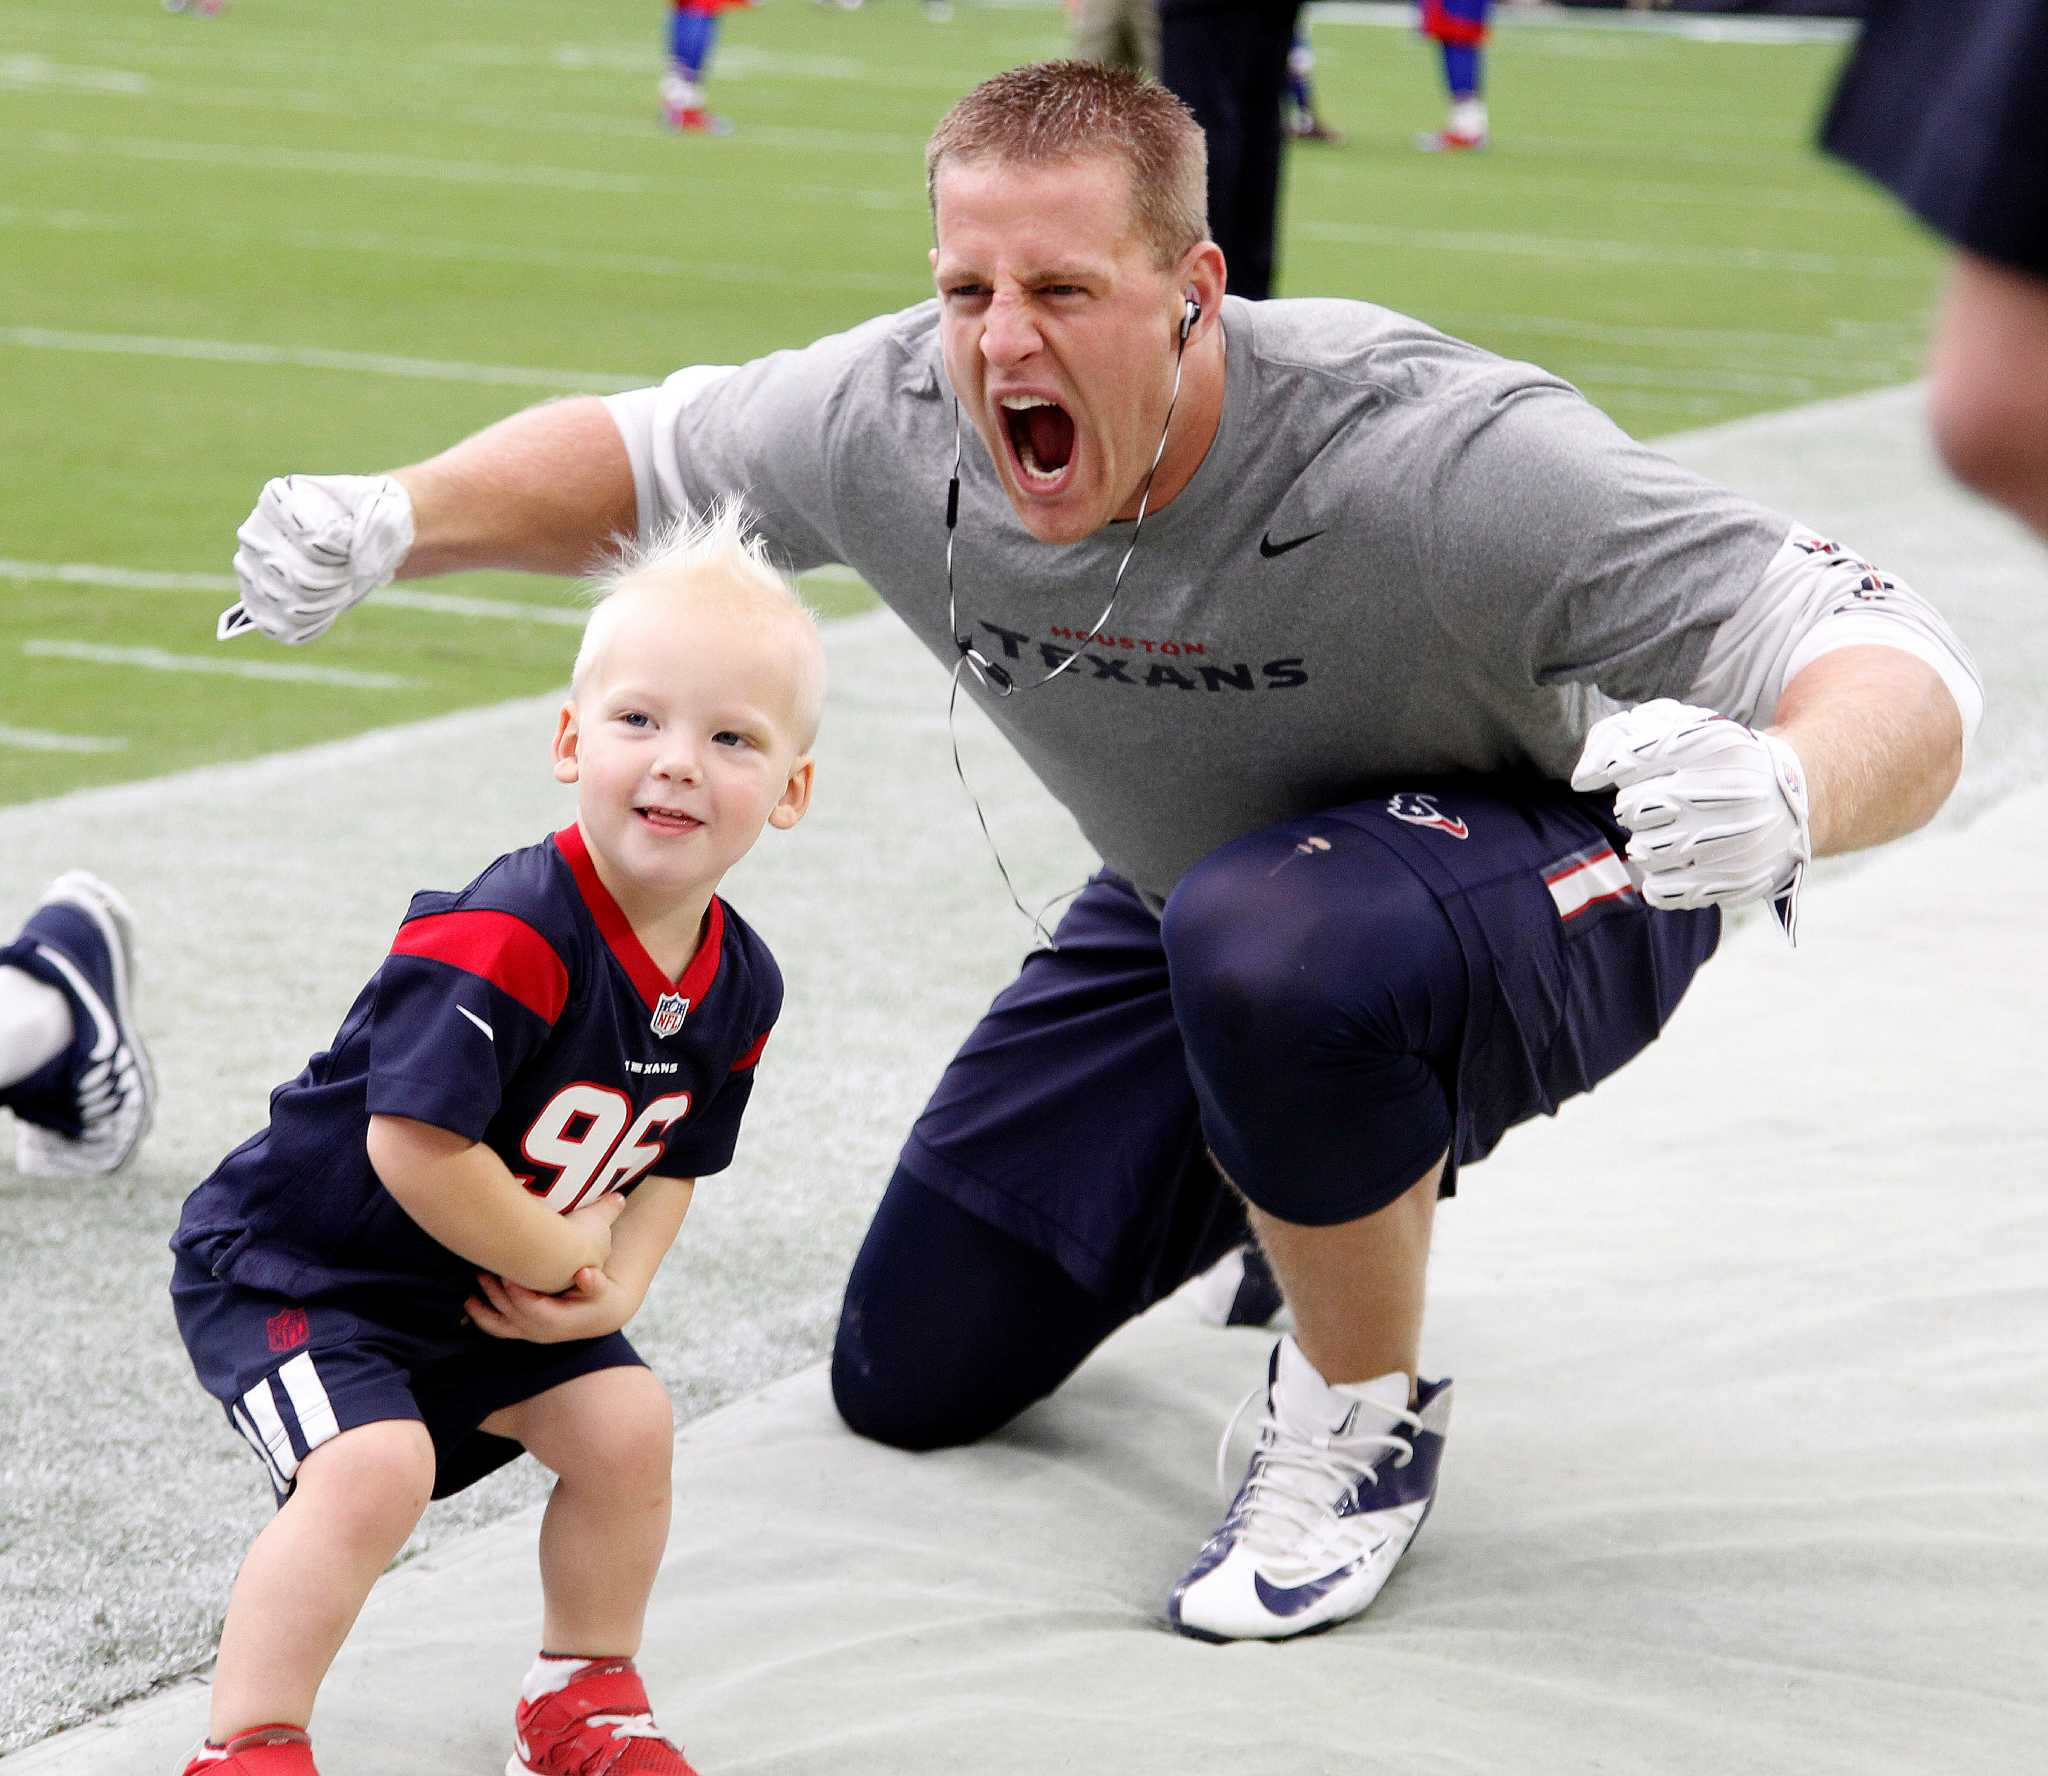 Jj watt roams the area meeting fans when hes not doing football jj watt roams the area meeting fans when hes not doing football things houston chronicle kristyandbryce Image collections